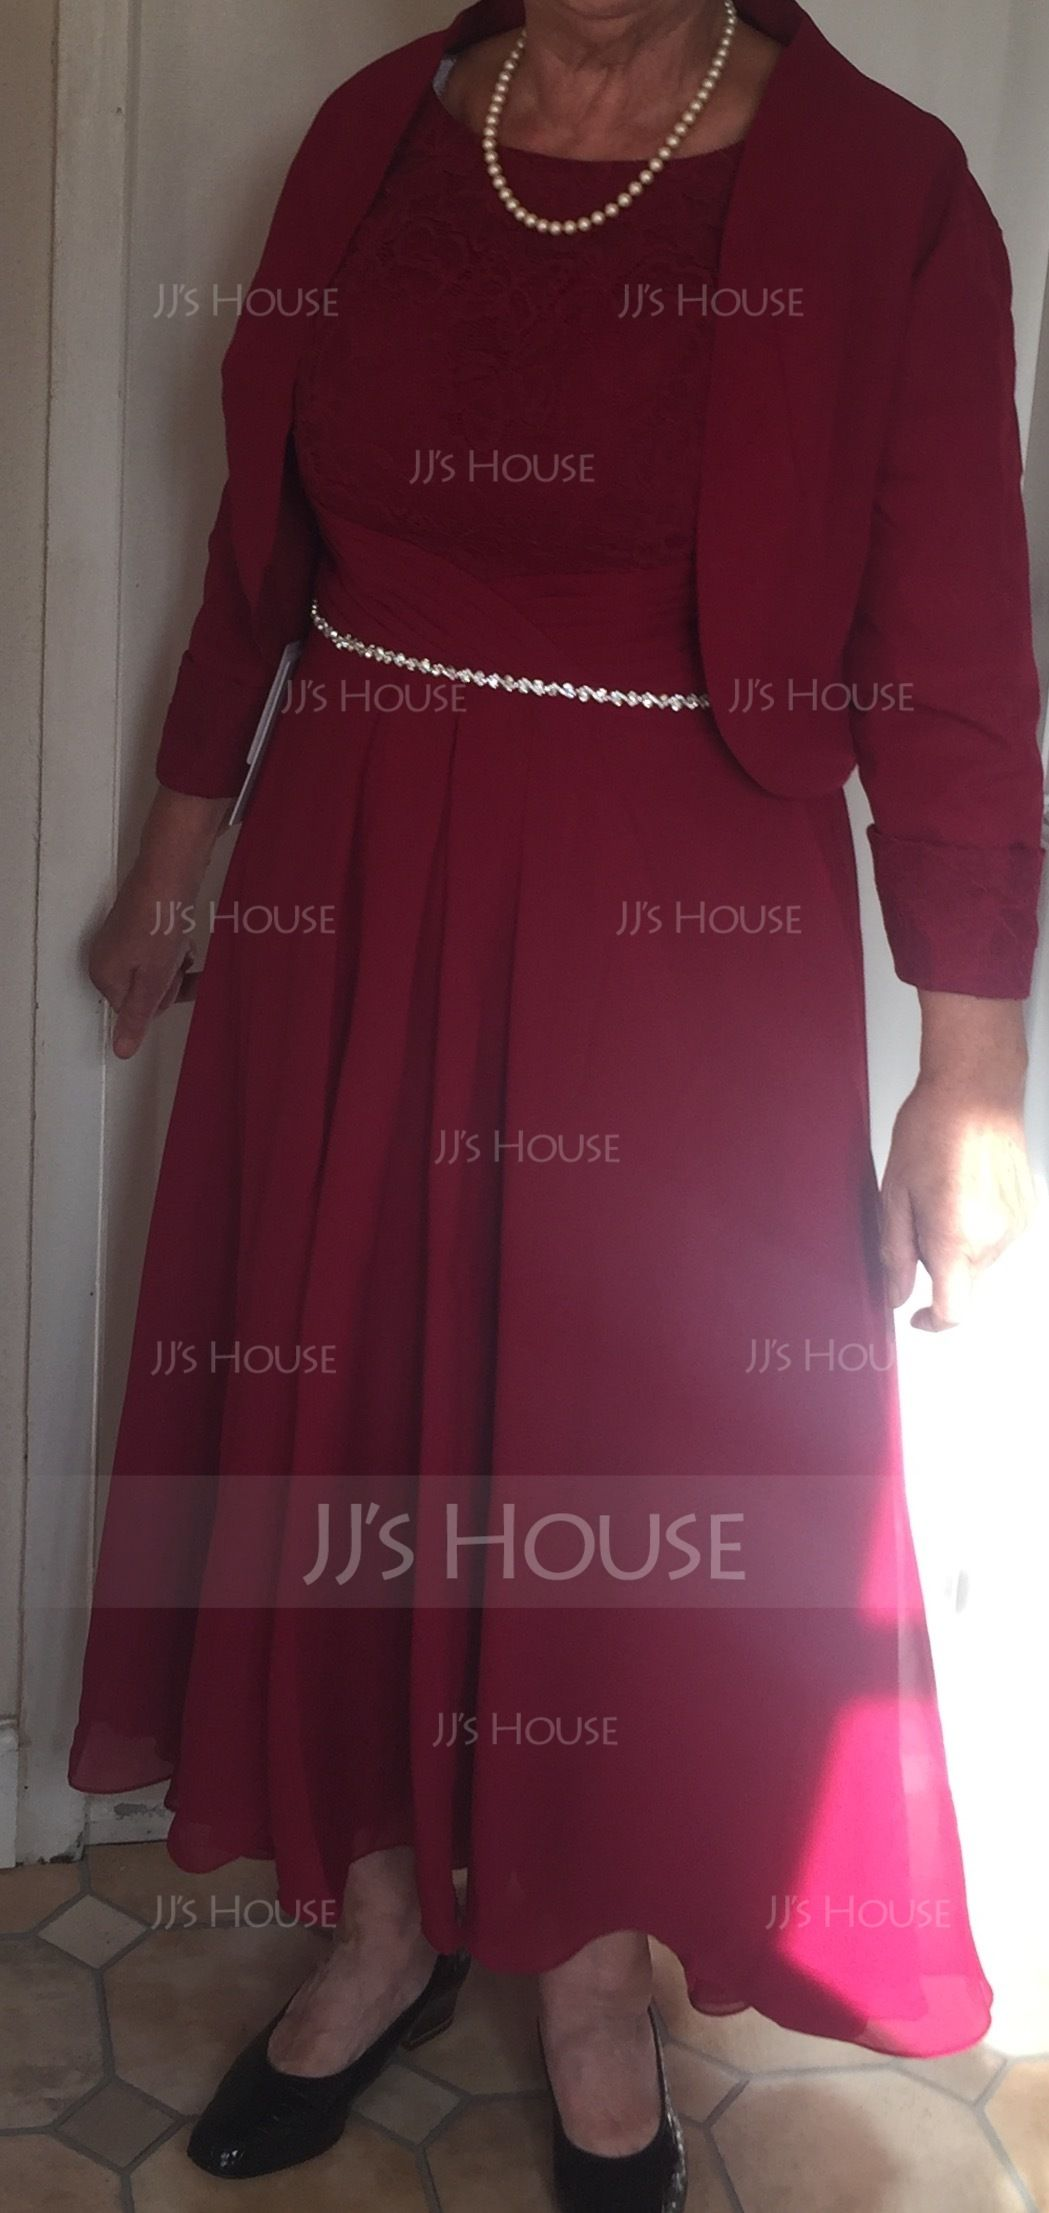 aa3ba3871f7 A-Line Princess Scoop Neck Asymmetrical Chiffon Lace Mother of the Bride  Dress With Beading (008118940) - Mother of the Bride Dresses - JJ s House